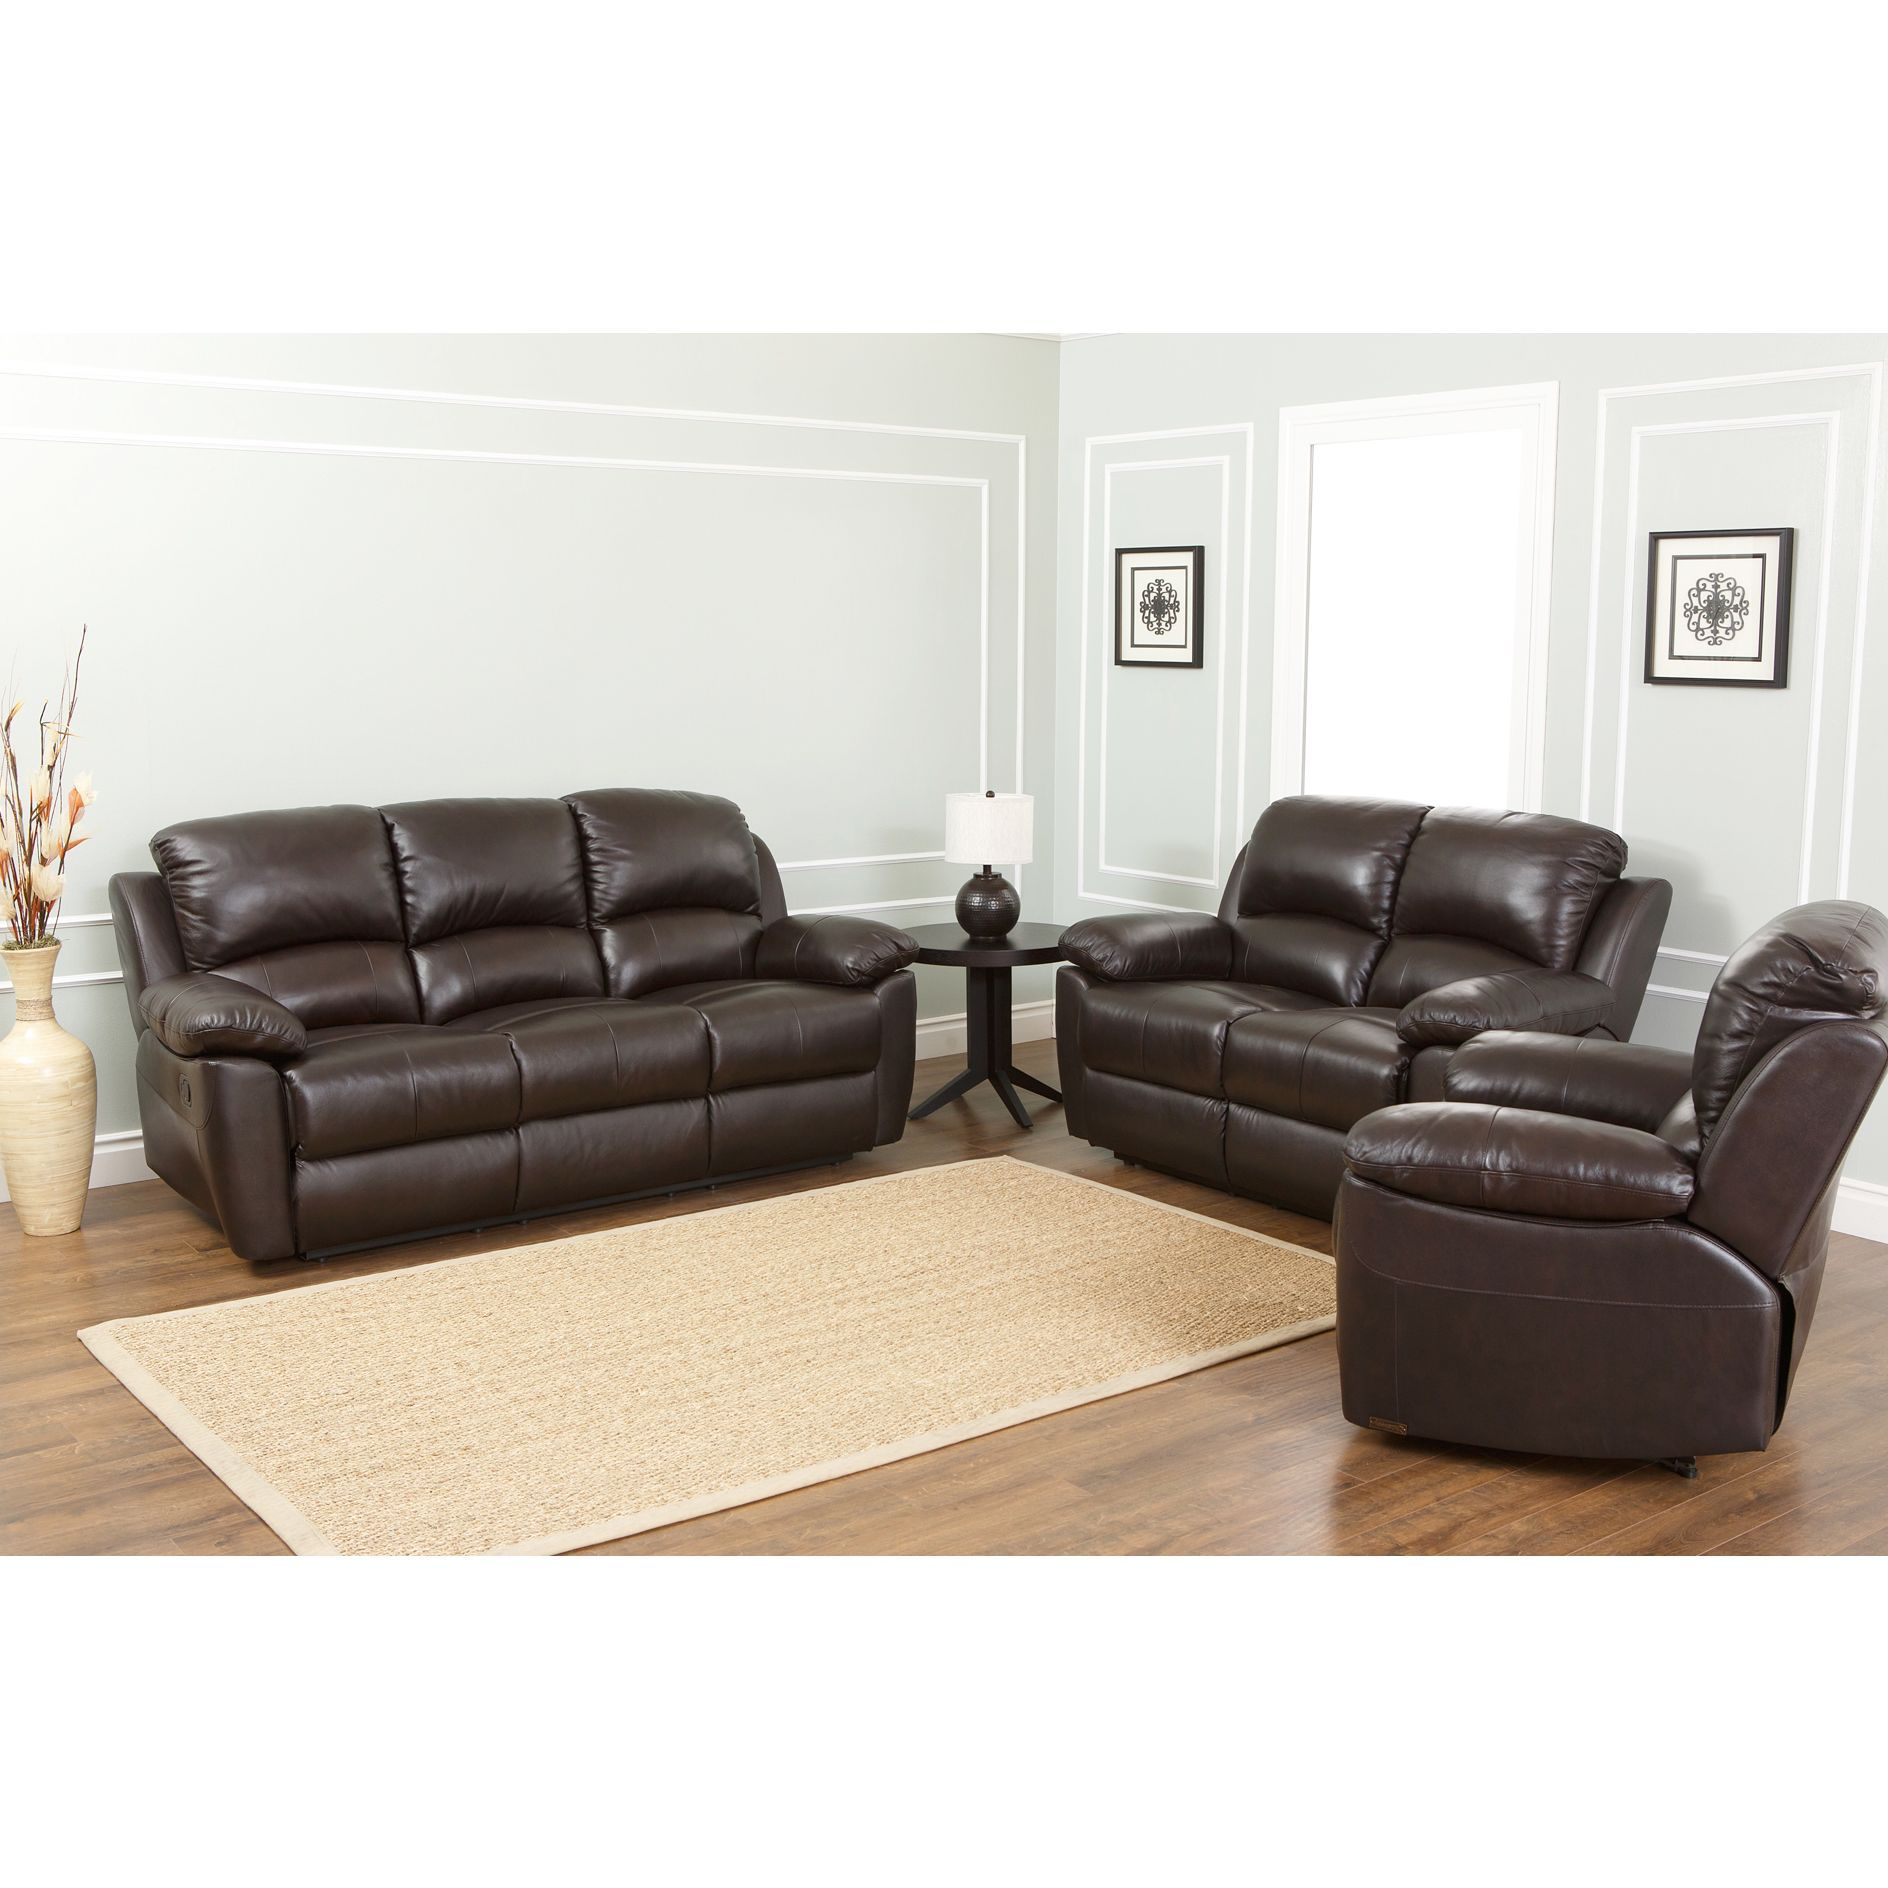 The Abbyson Living Westwood 3 Piece Top Grain Leather